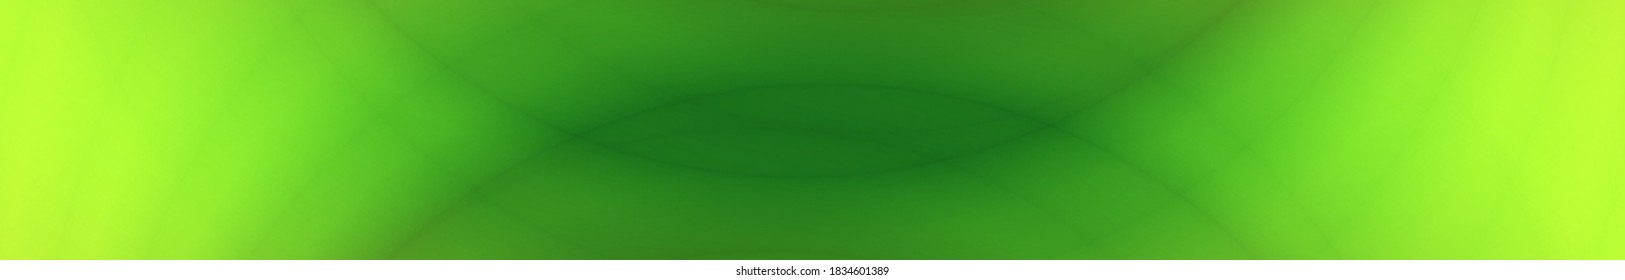 Greean background art abstract horizontal headers pattern